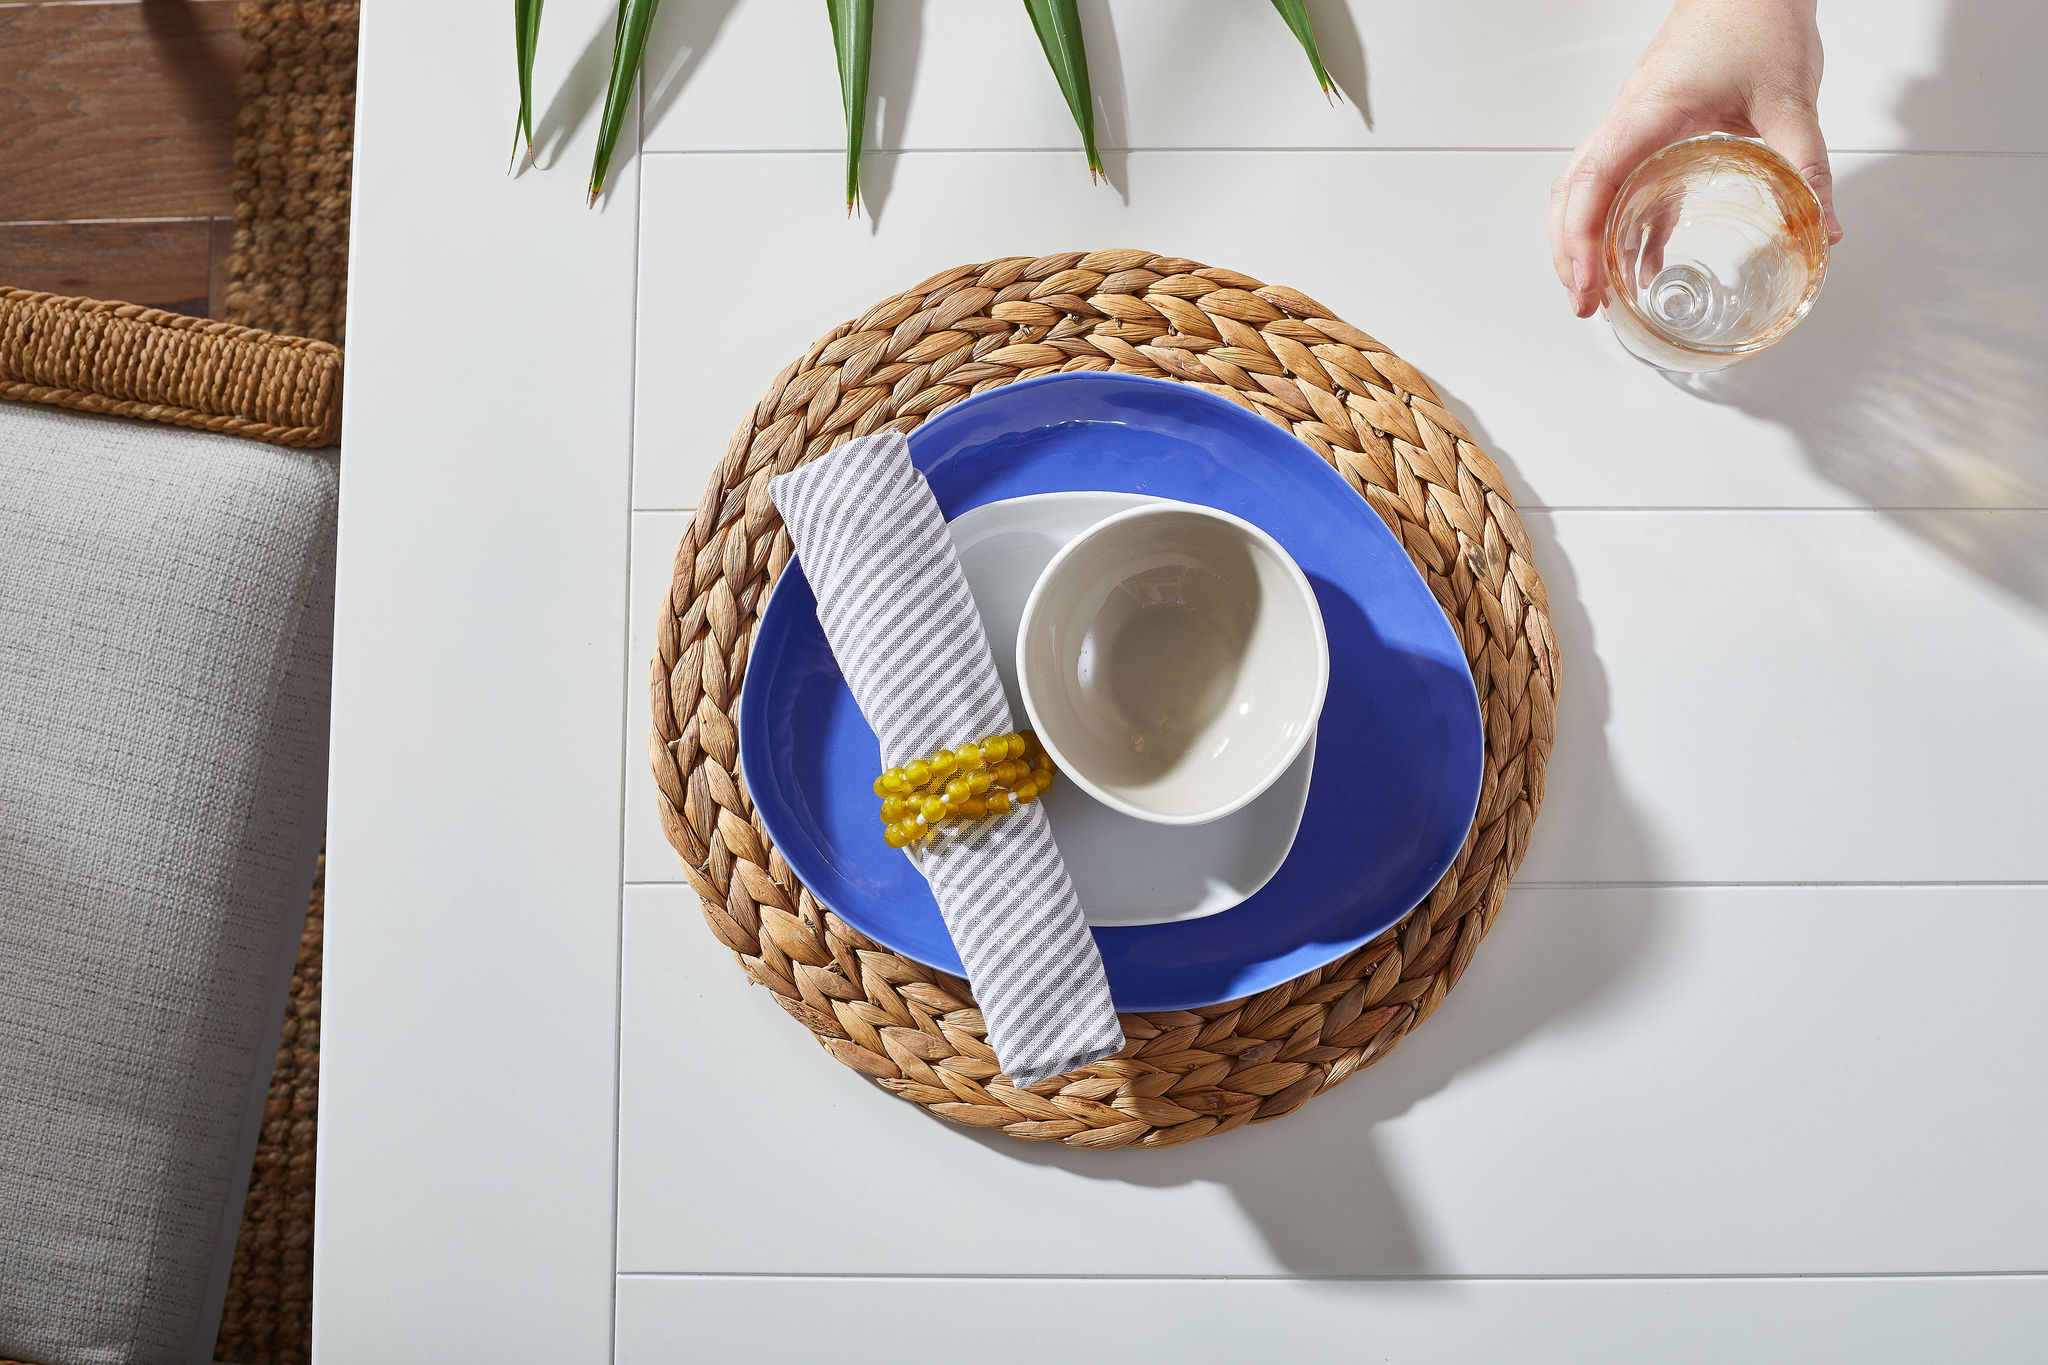 Place setting with a woven placemat, blue base plate, white bowls and a clear glass.